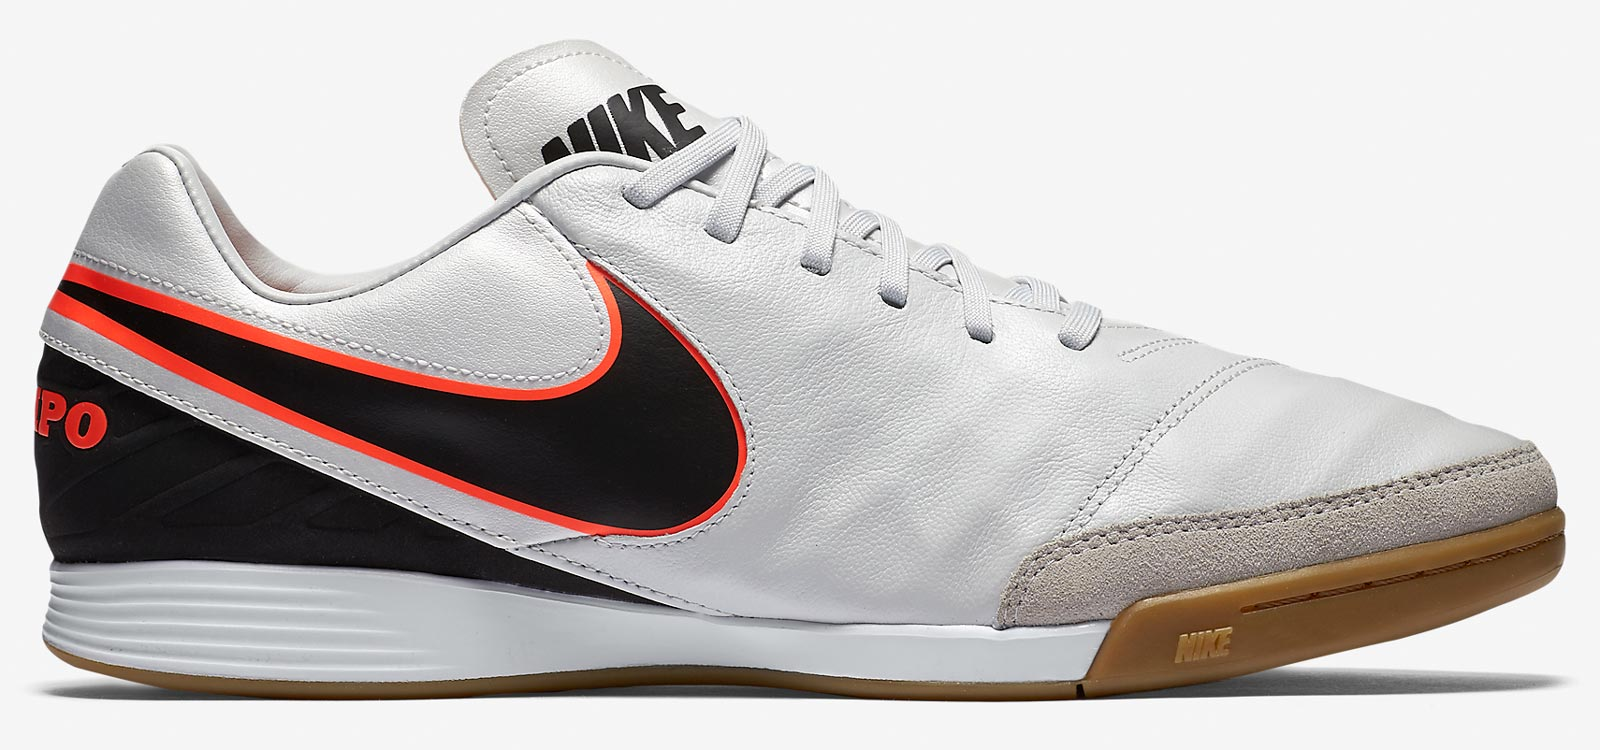 Next Gen Nike Tiempo 2016 Indoor Boots Released Footy